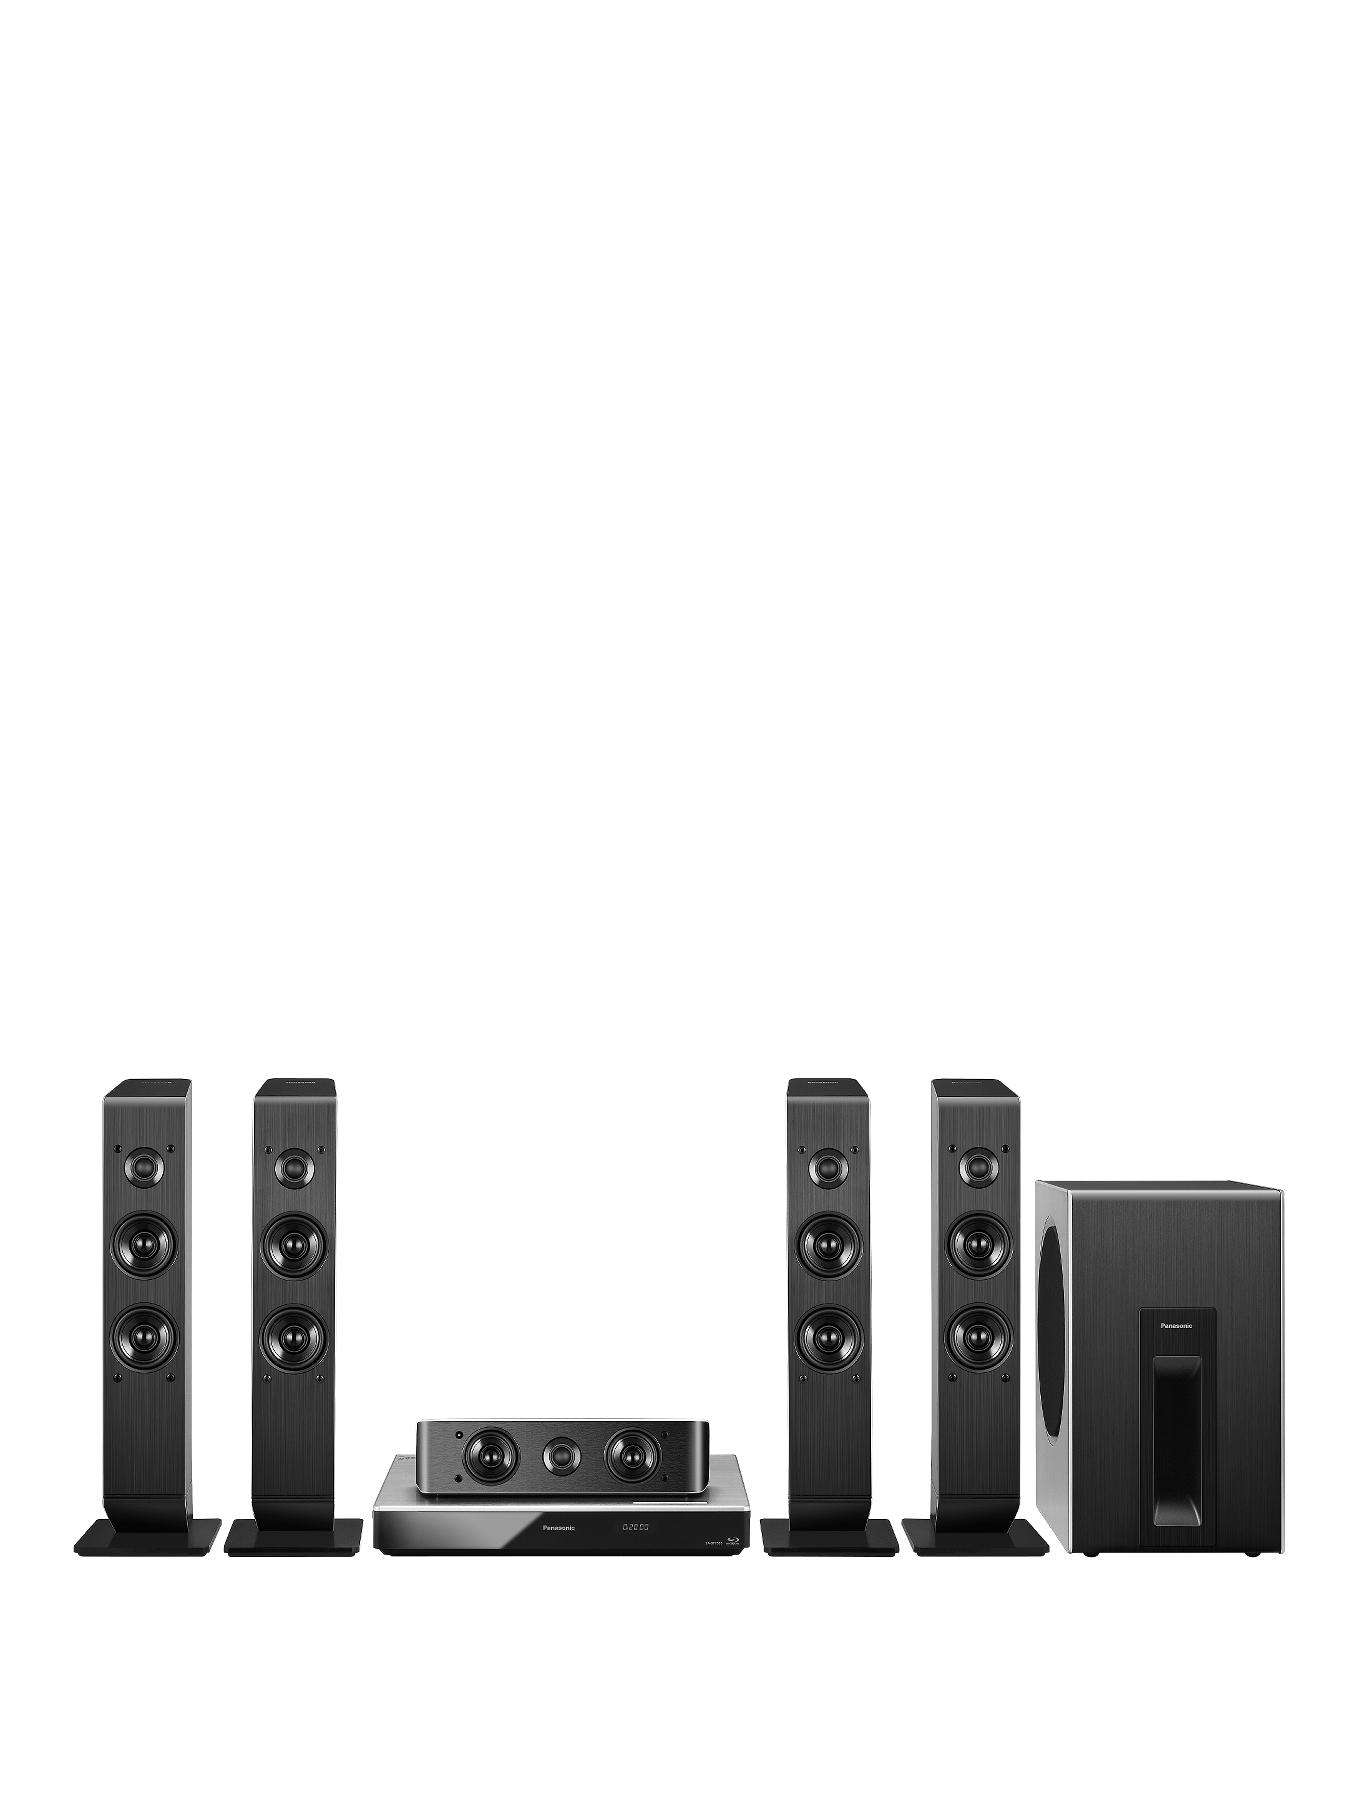 Panasonic SC-BTT505 5.1 3D Smart Blu-ray Home Cinema with Built-in WI-Fi and 4K UHD Upscaling